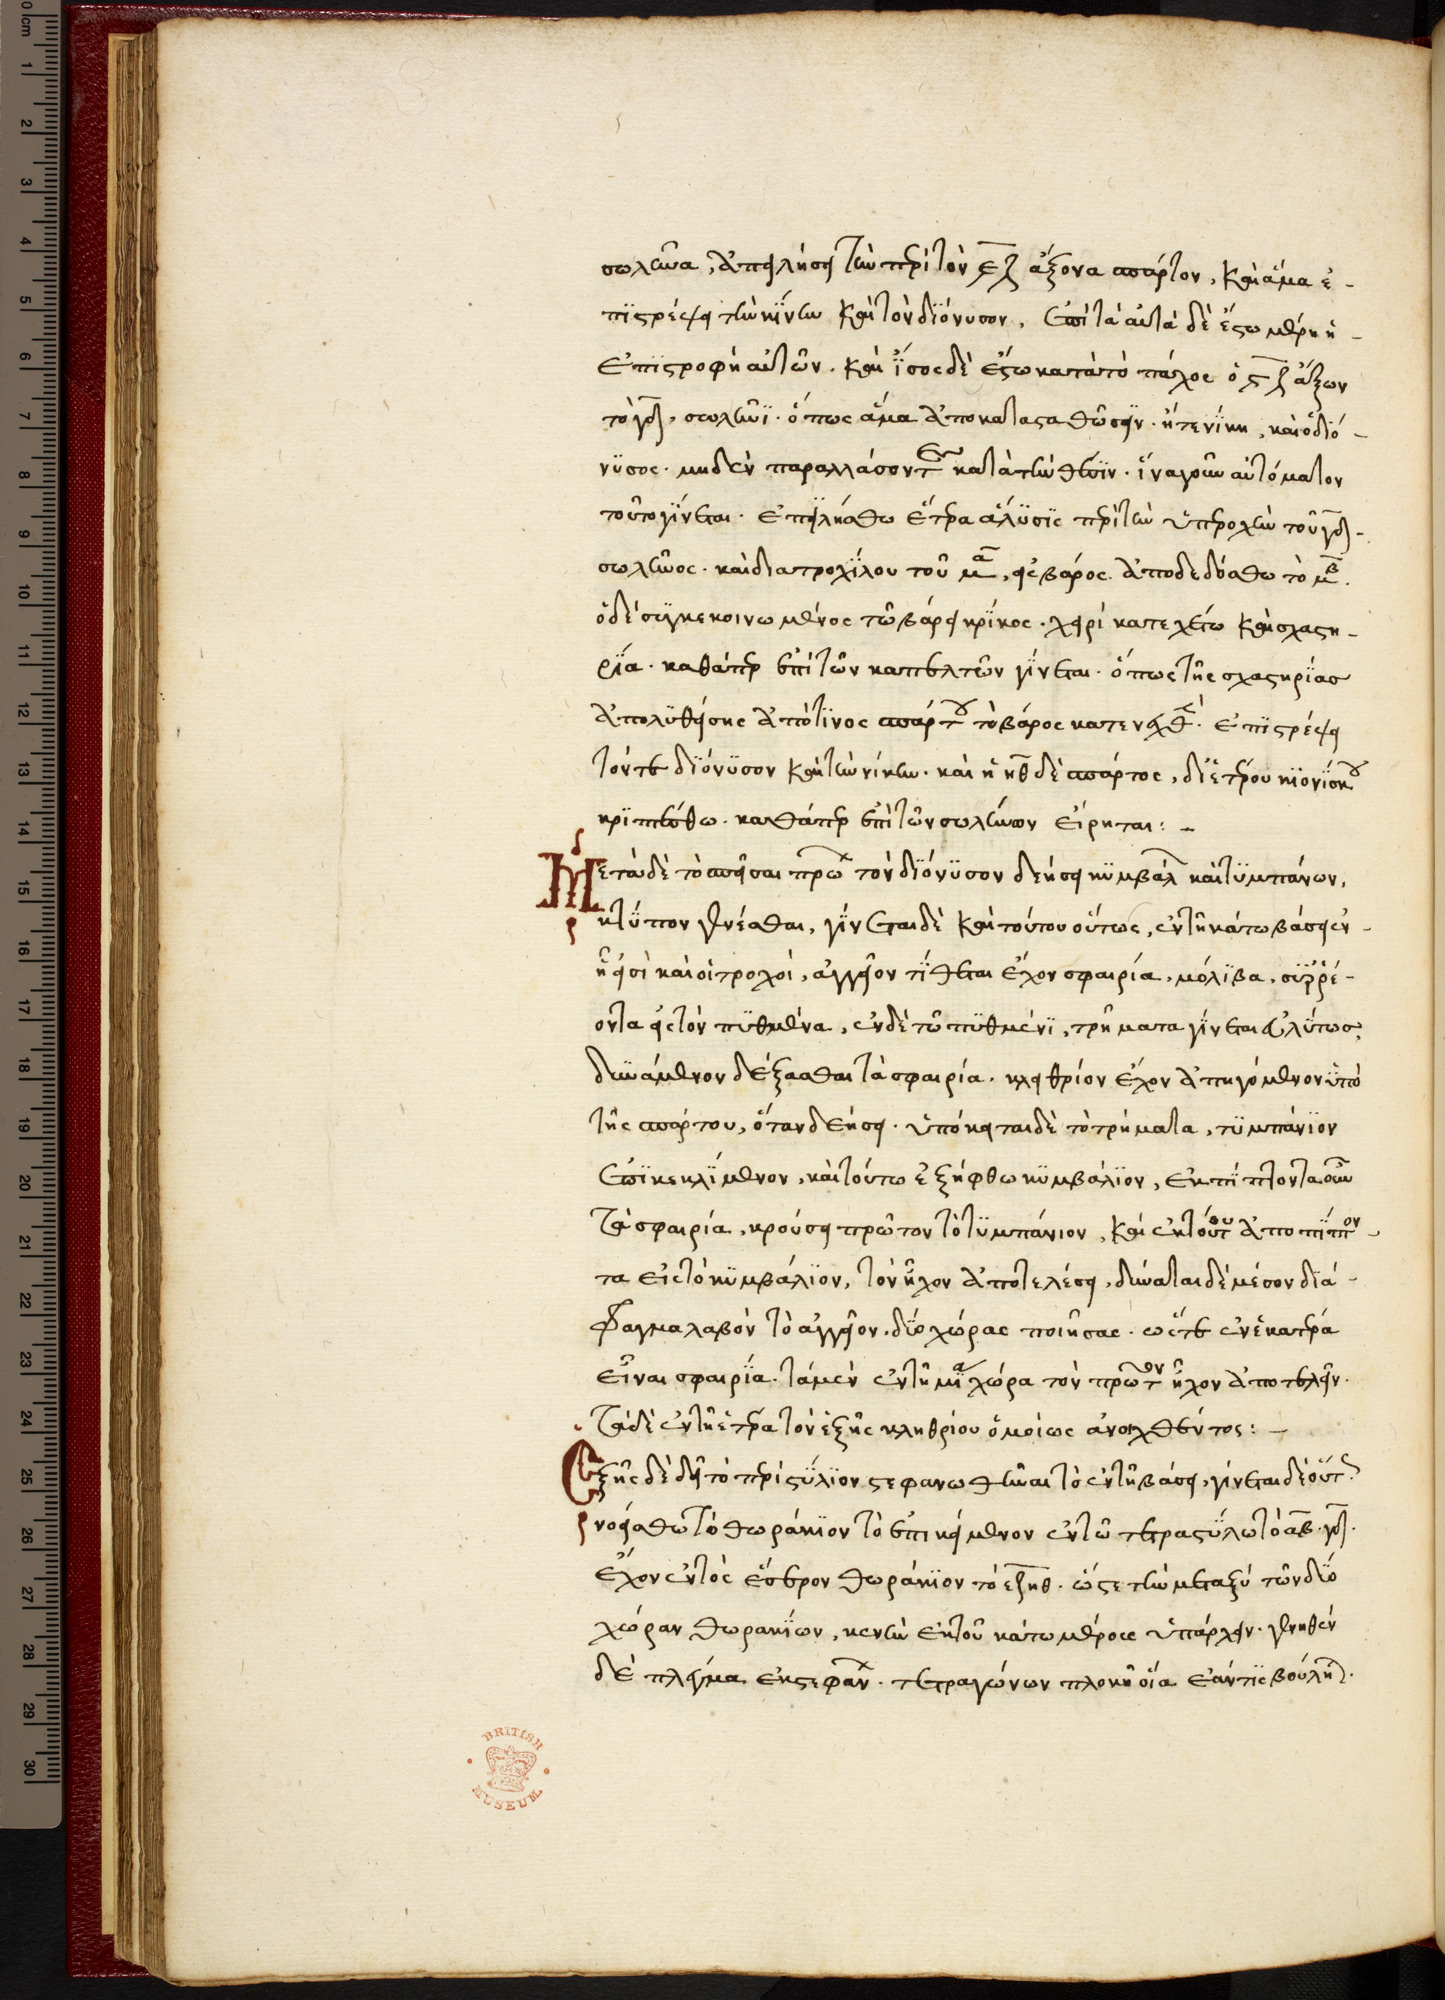 John Mauromates' copy of Hero's mechanical texts (Harley MS 5605 f059v)